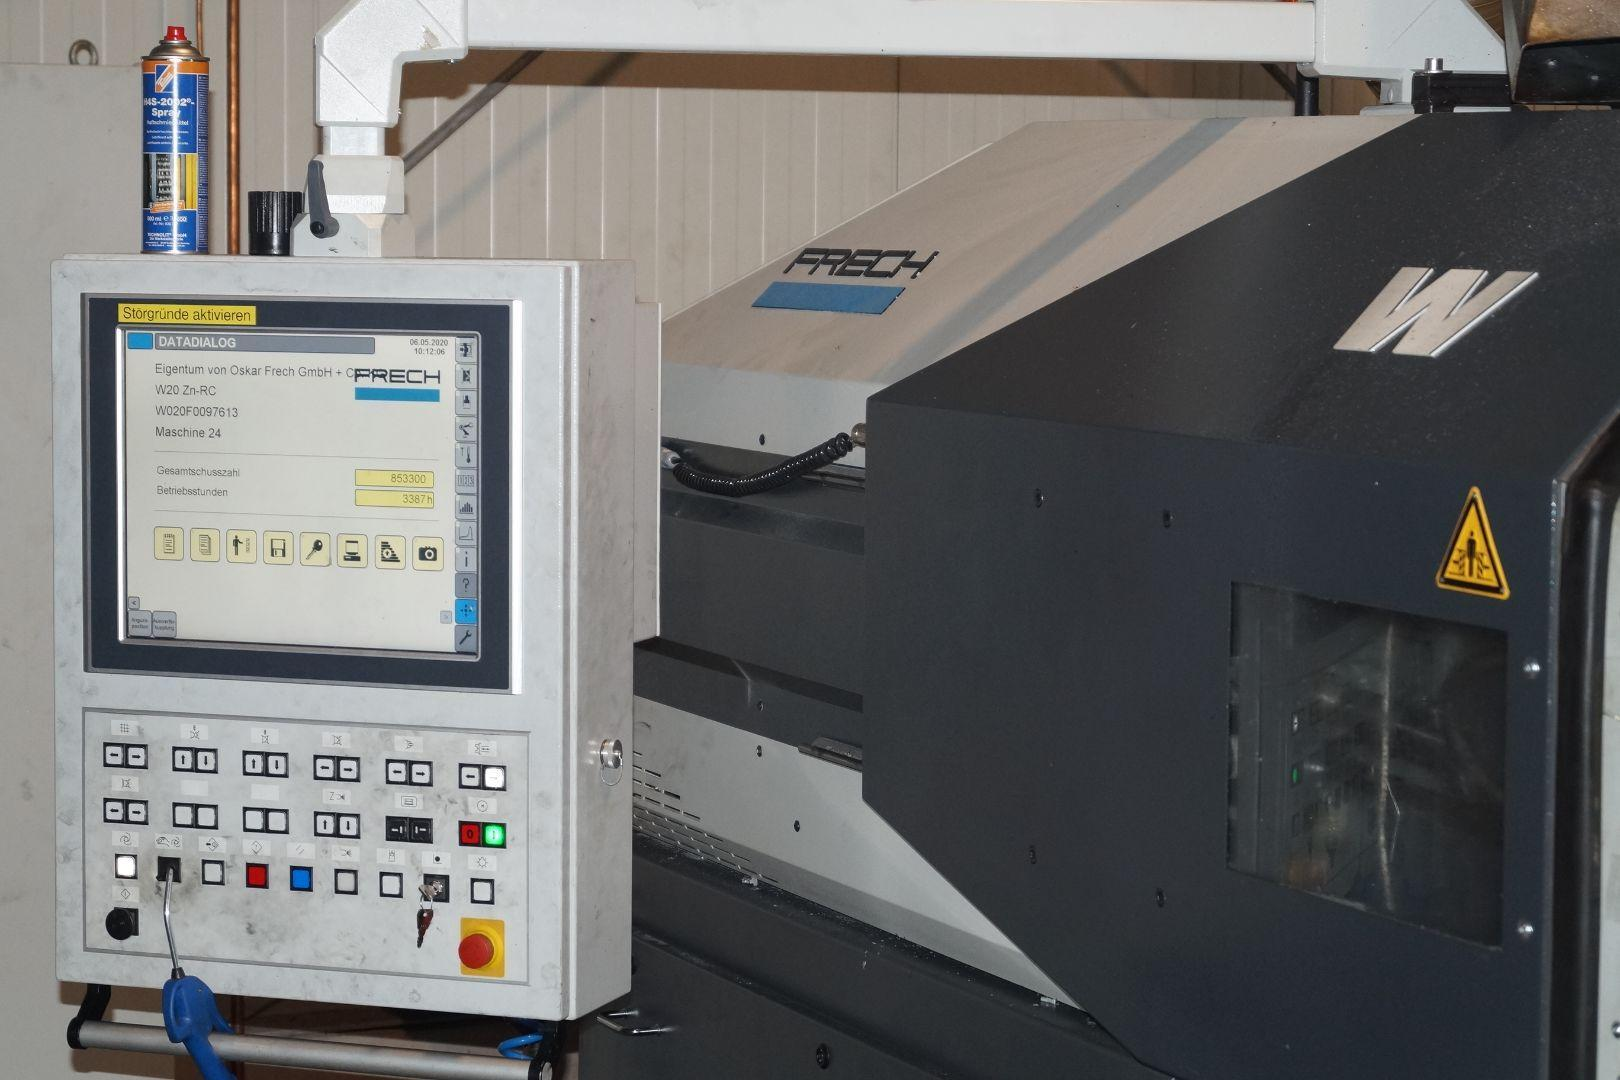 used Diecasting Machines Hot-Chamber Diecasting Machine - Vertic. FRECH W20Zn-RC